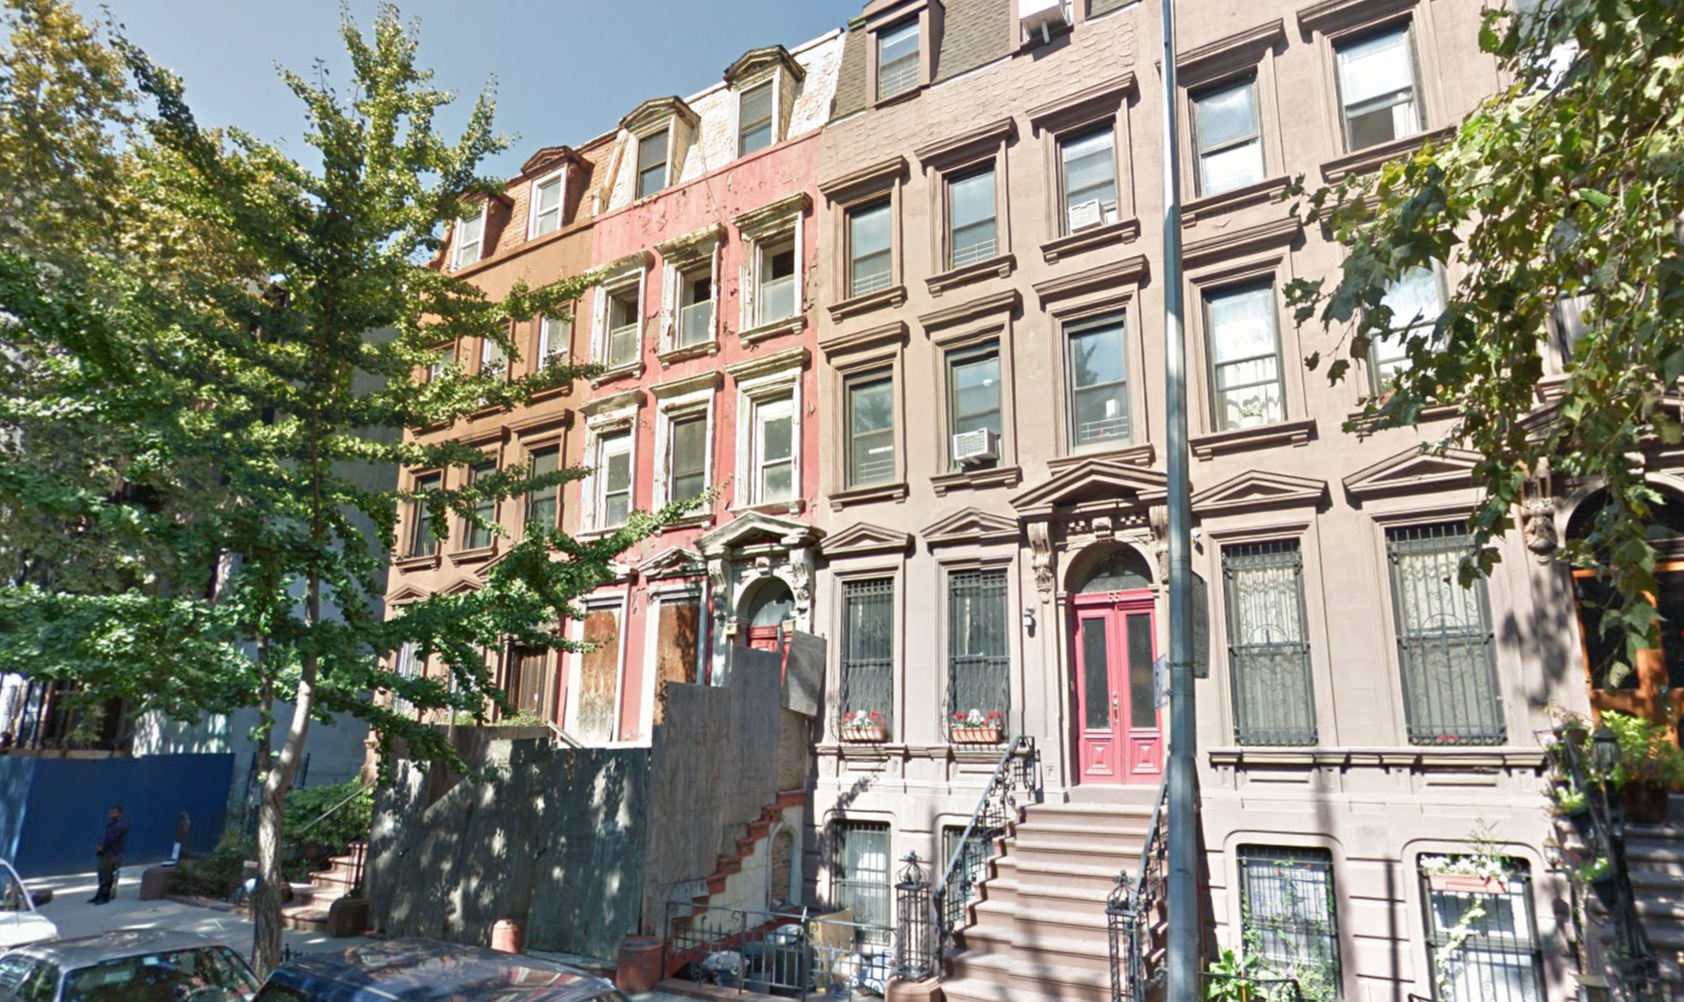 57 West 130th Street, image via Google Maps